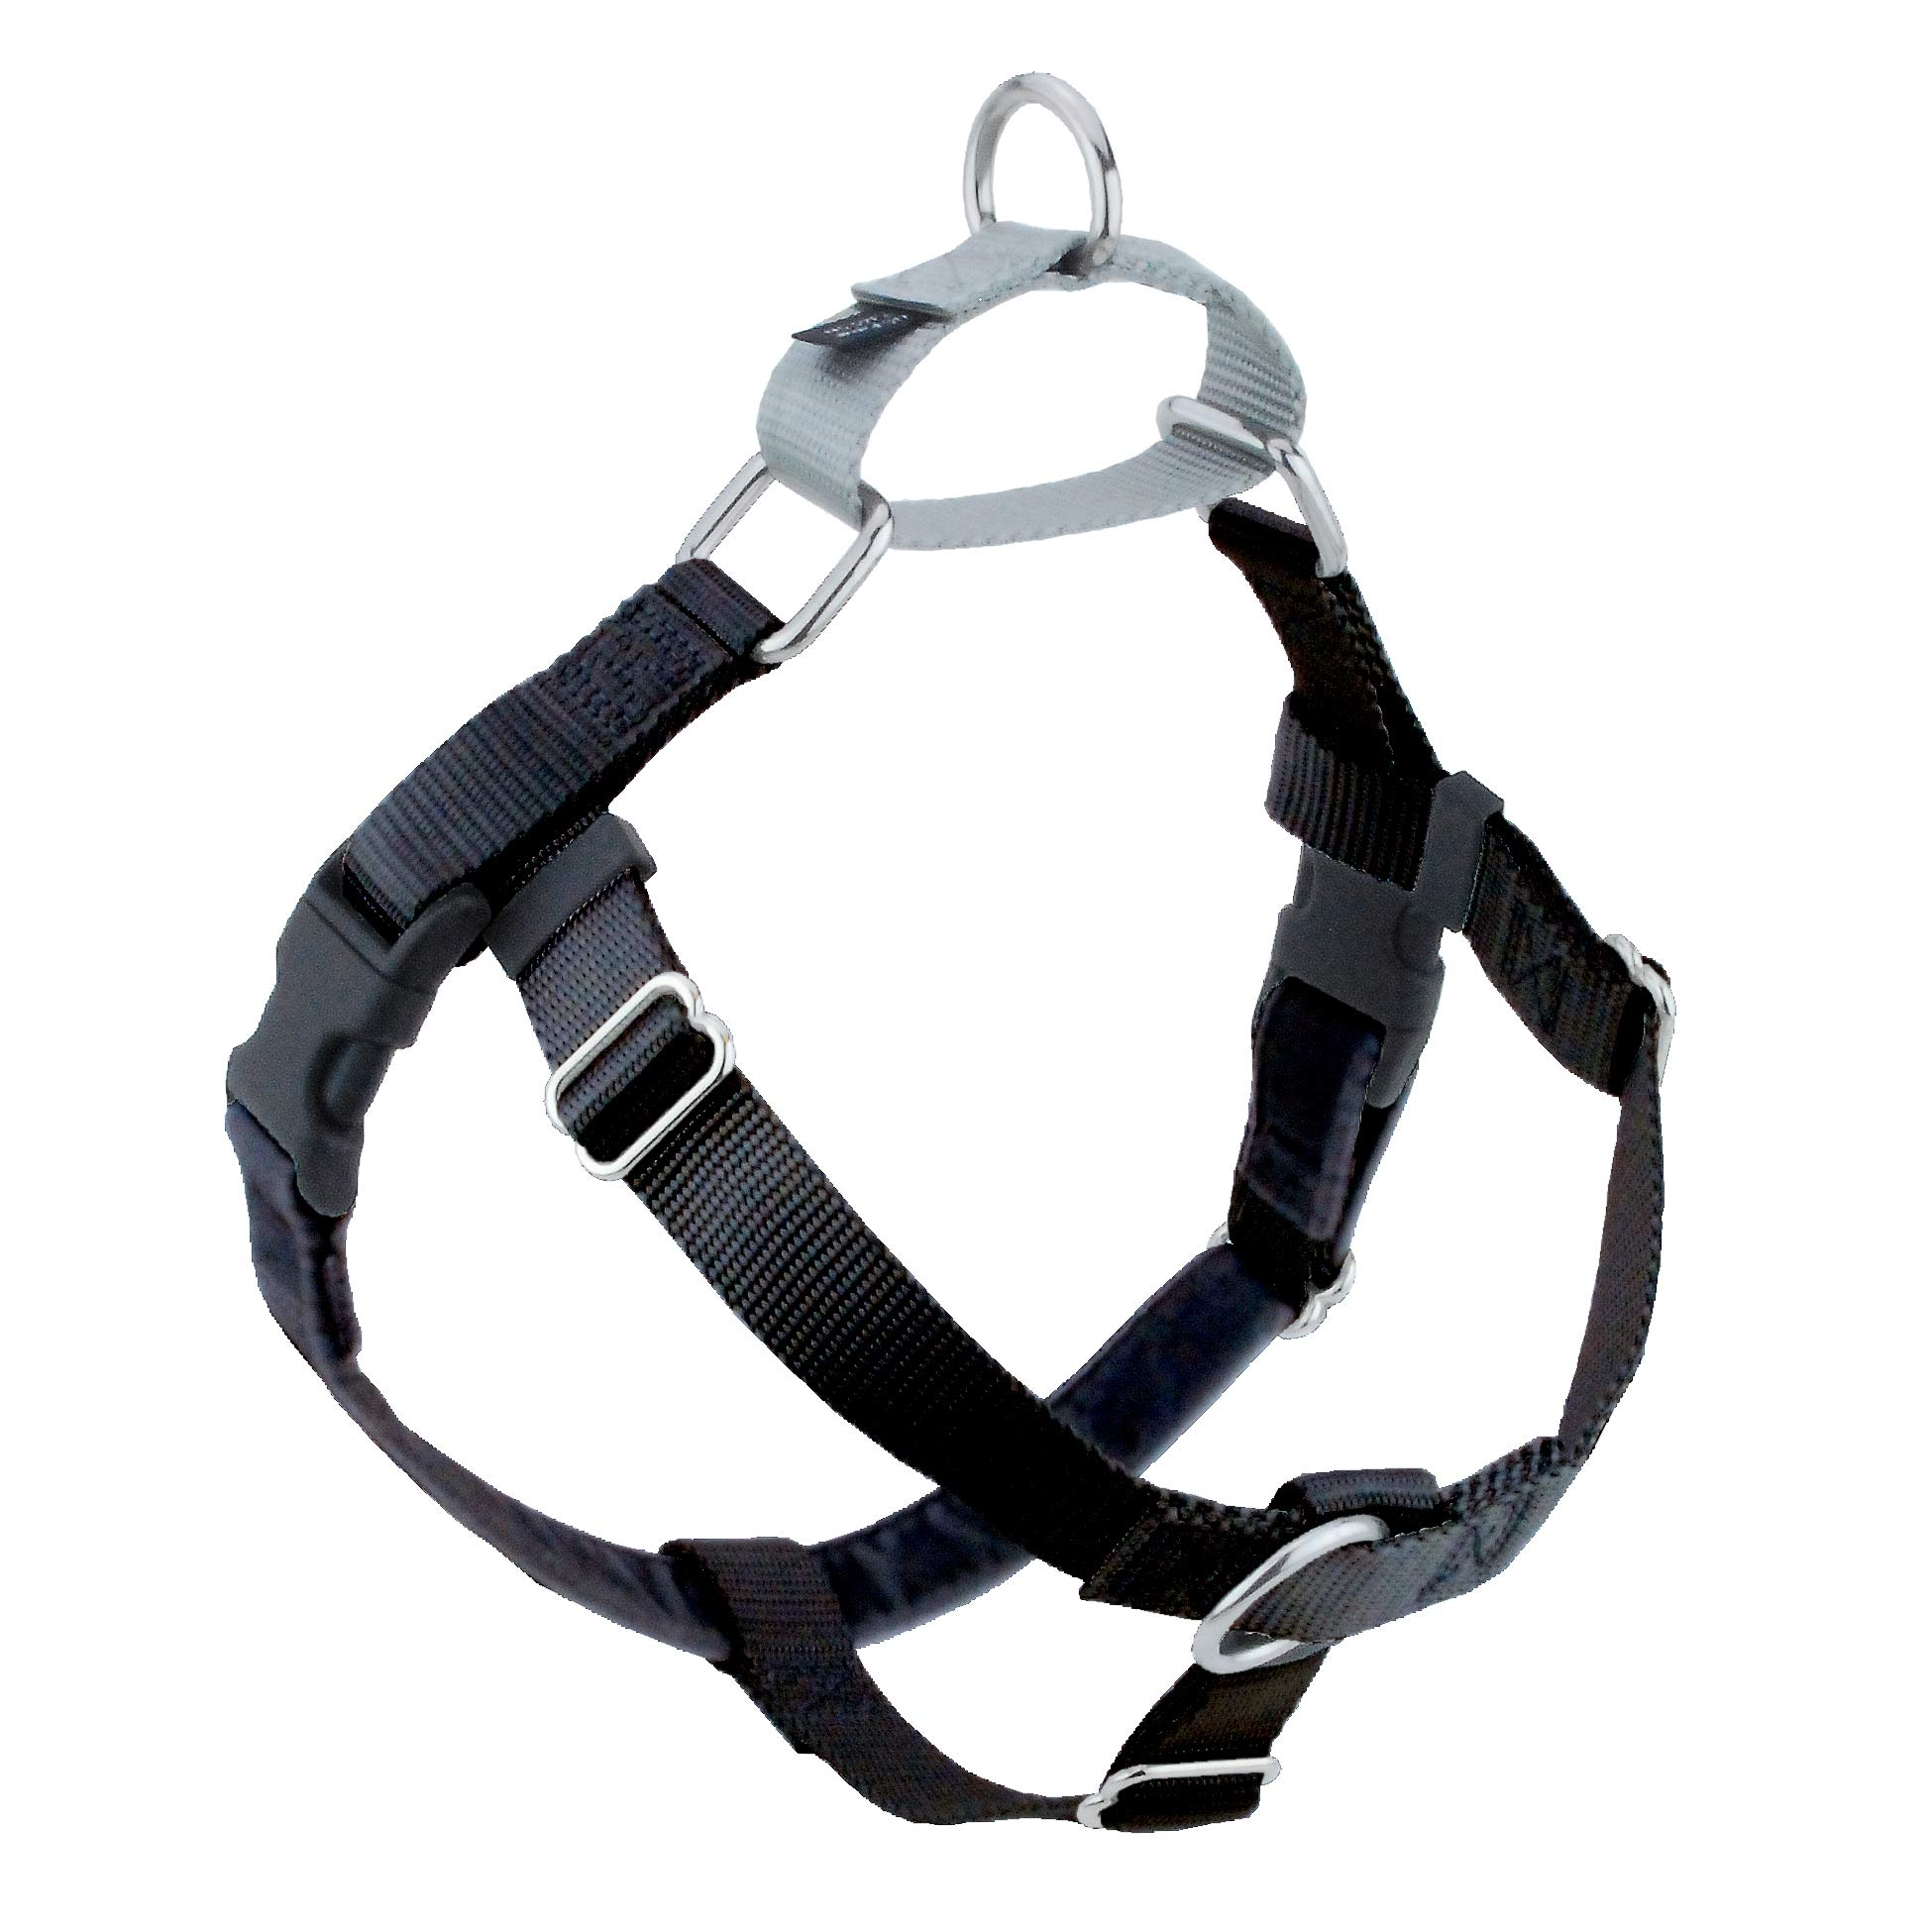 2 Hounds Design Freedom No-Pull Dog Harness, Adjustable Comfortable Control for Dog Walking, Made in USA (Leash Sold Separately) (Small 5/8'') (Black)